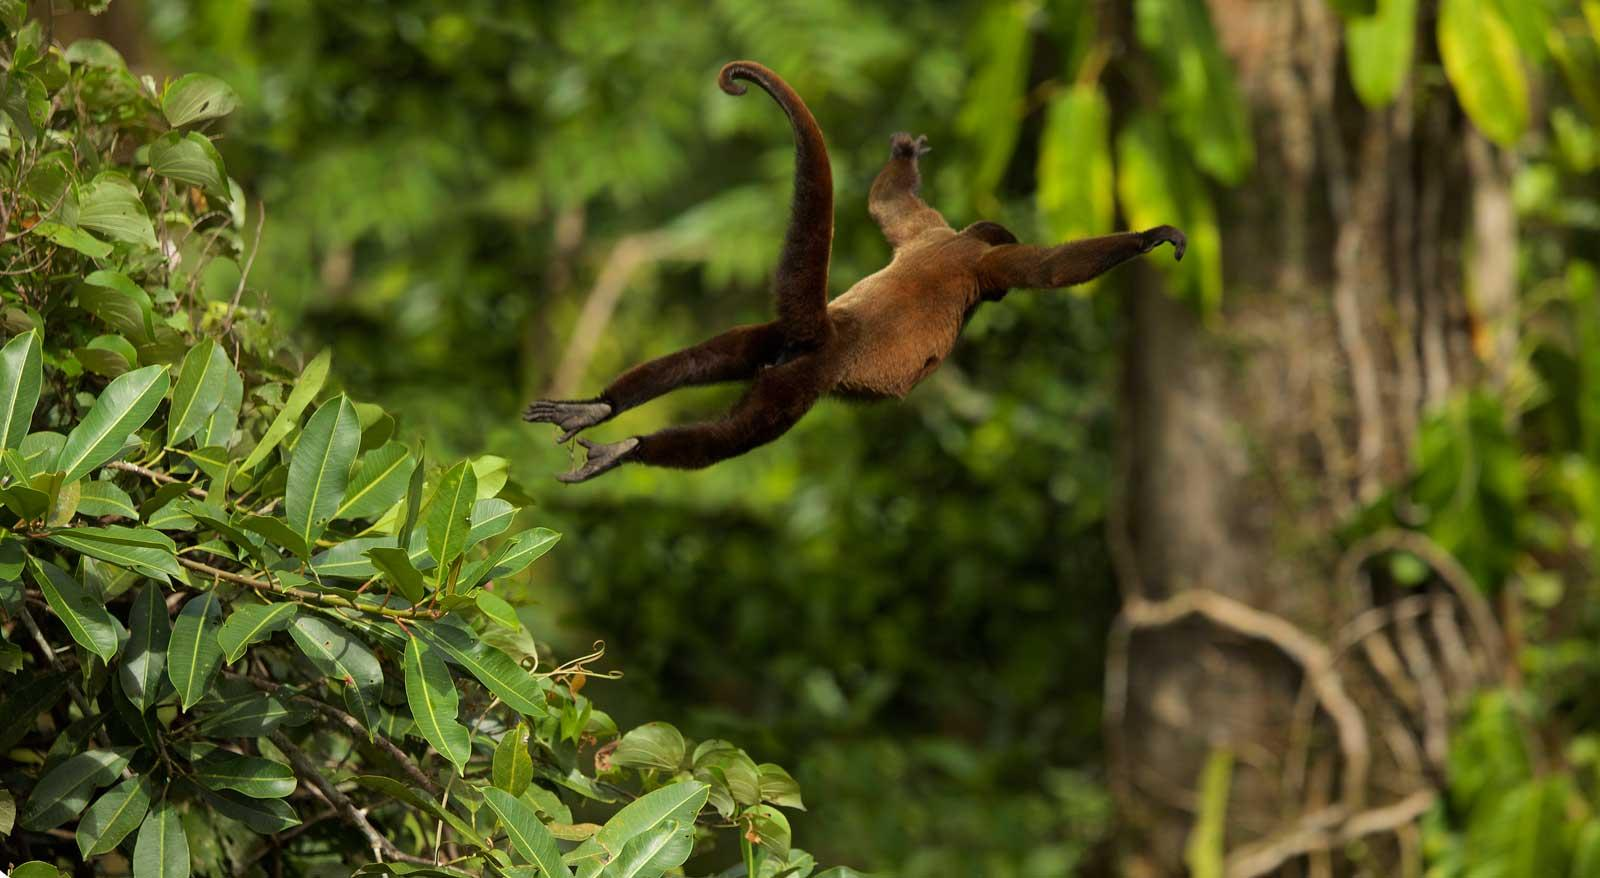 Swinging monkey photographs